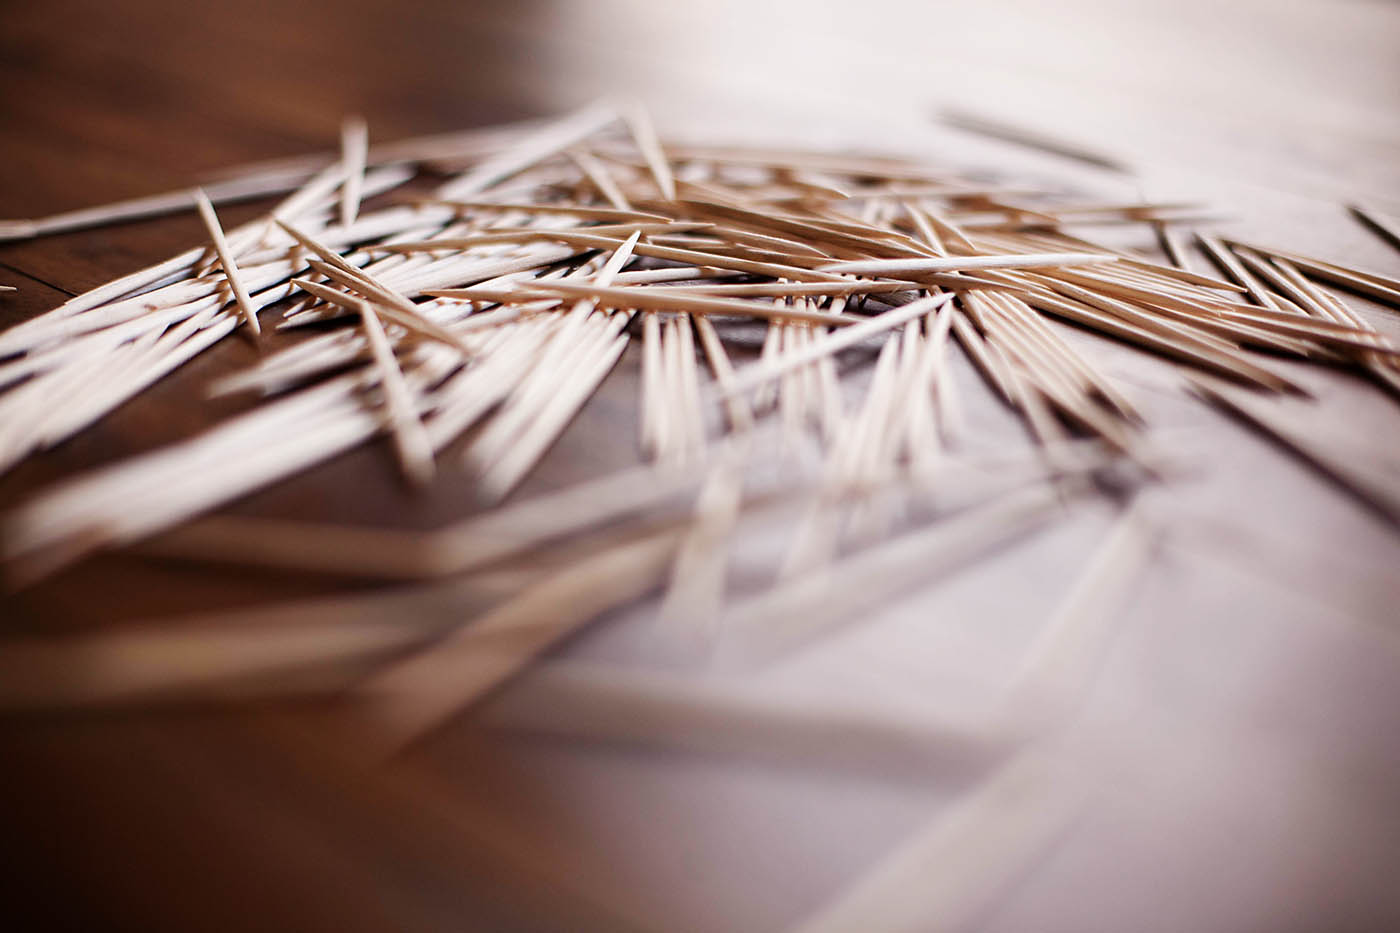 Toothpick and dough construction